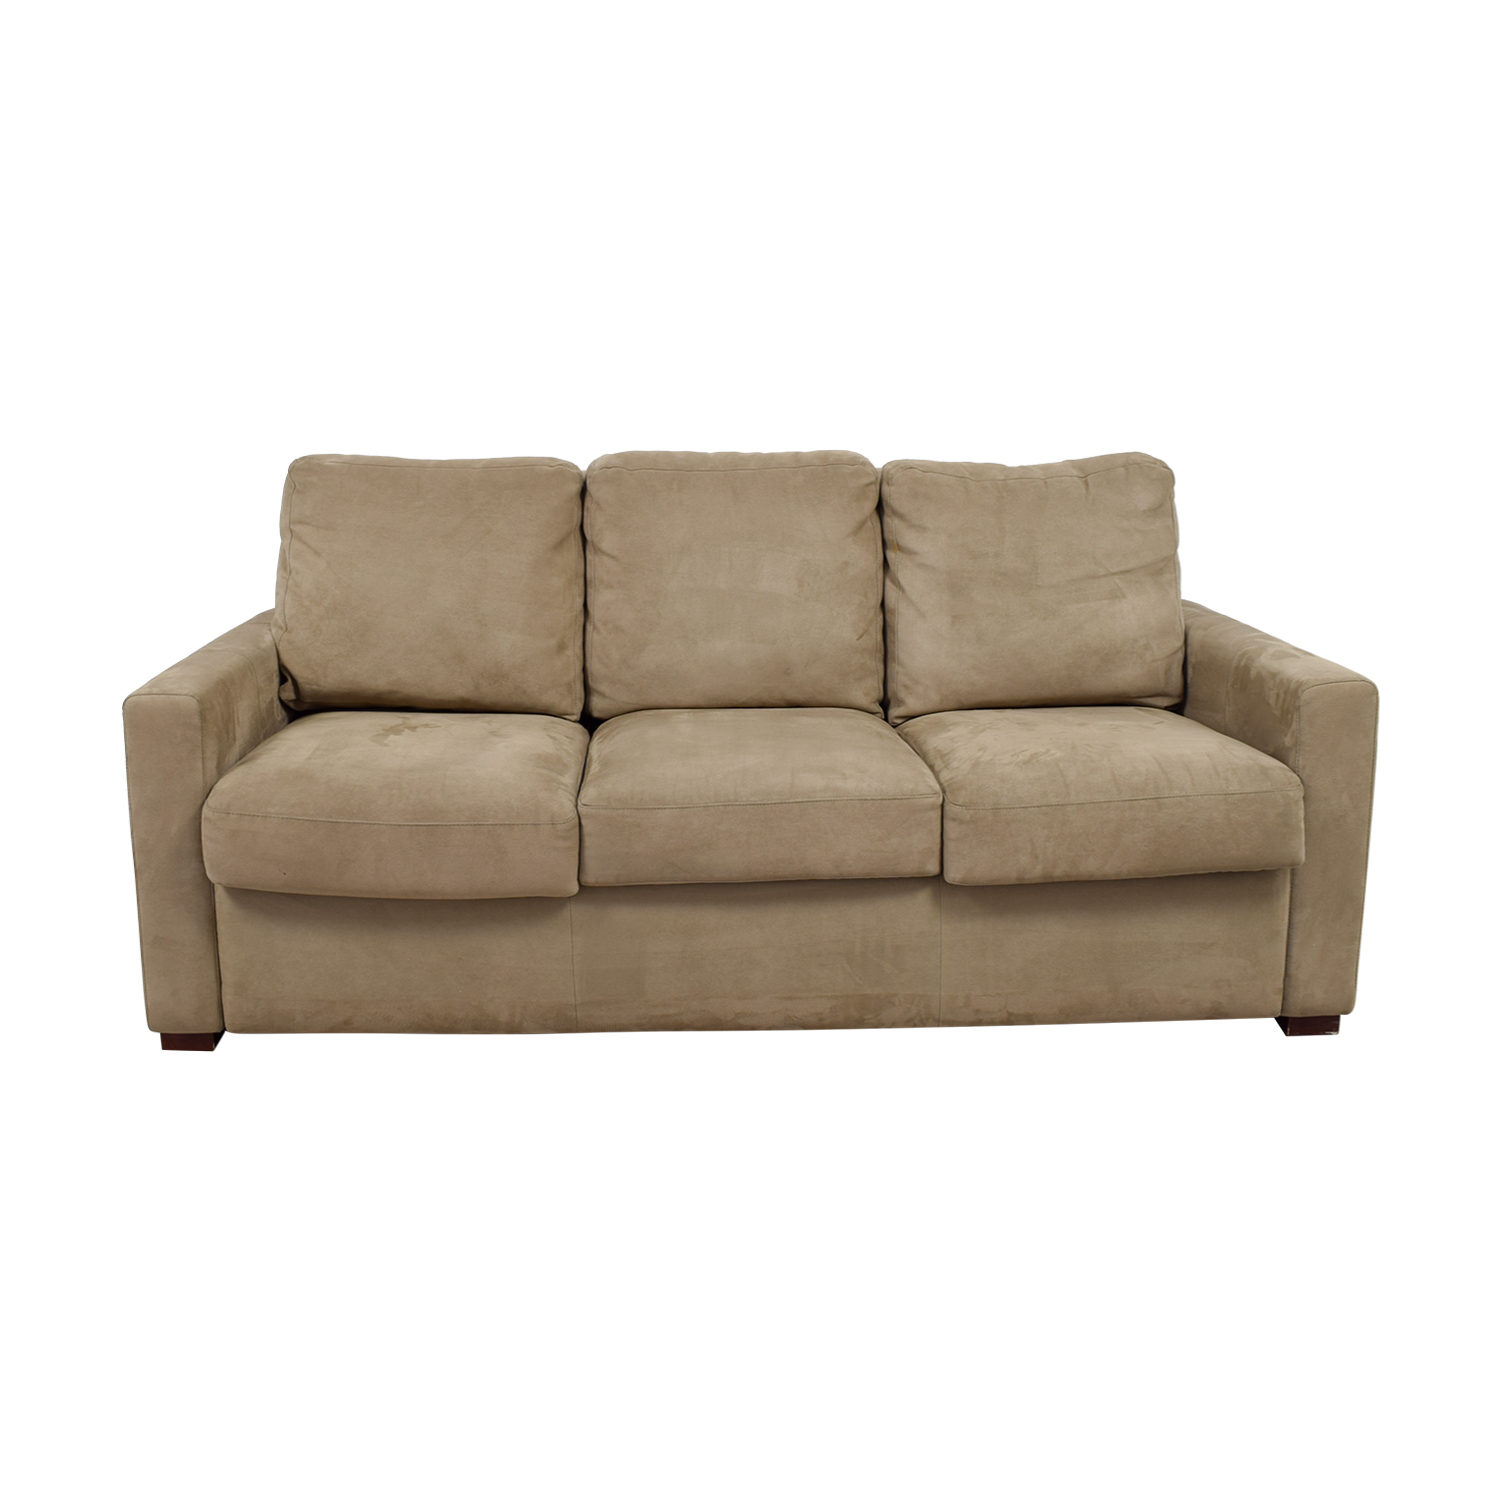 Comfort Sleepers Comfort Sleepers Beige Three-Cushion Sofa price